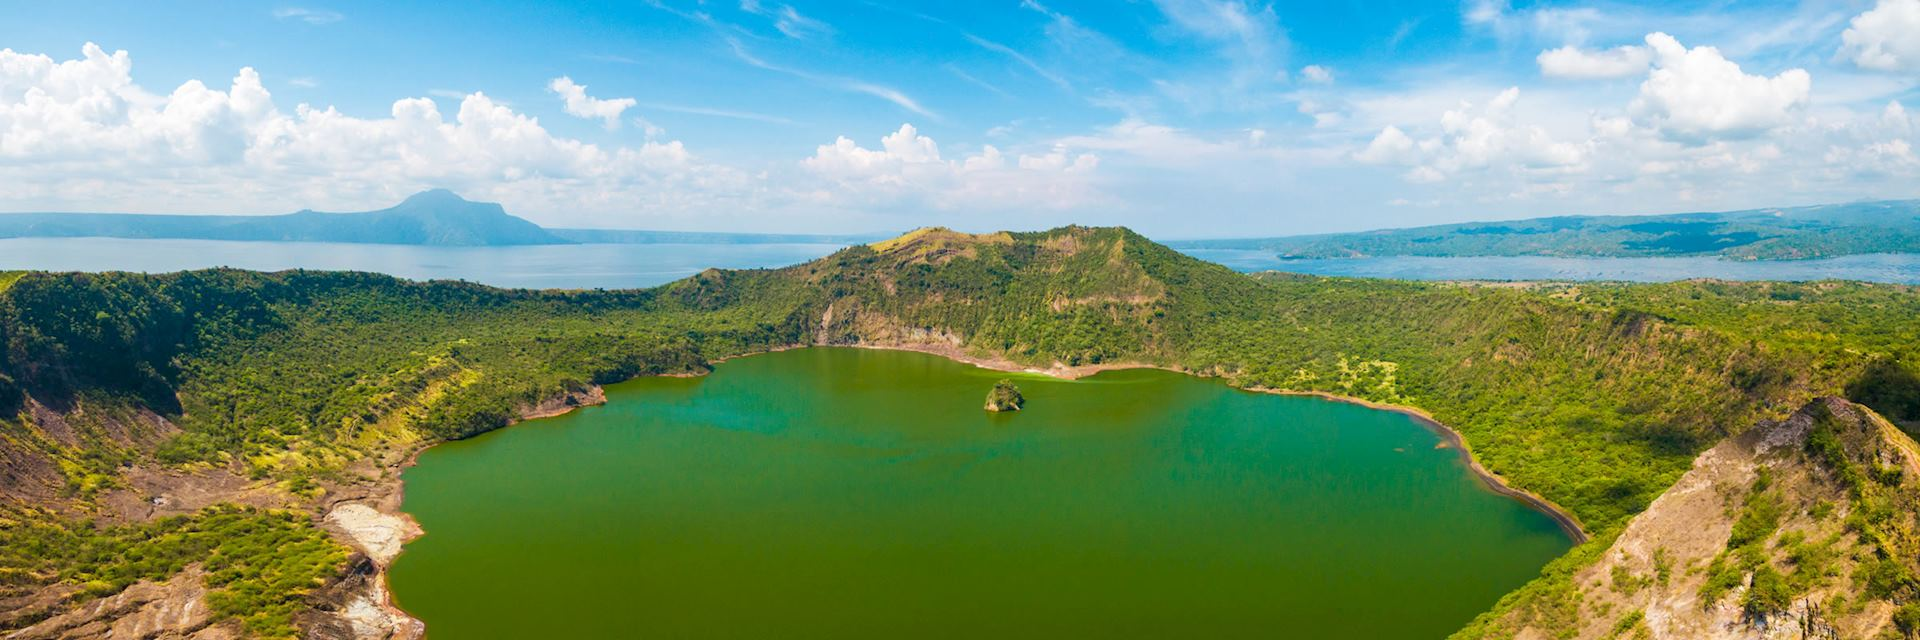 Vulcan Point Island and Crater Lake in Batangas, Southern Luzon